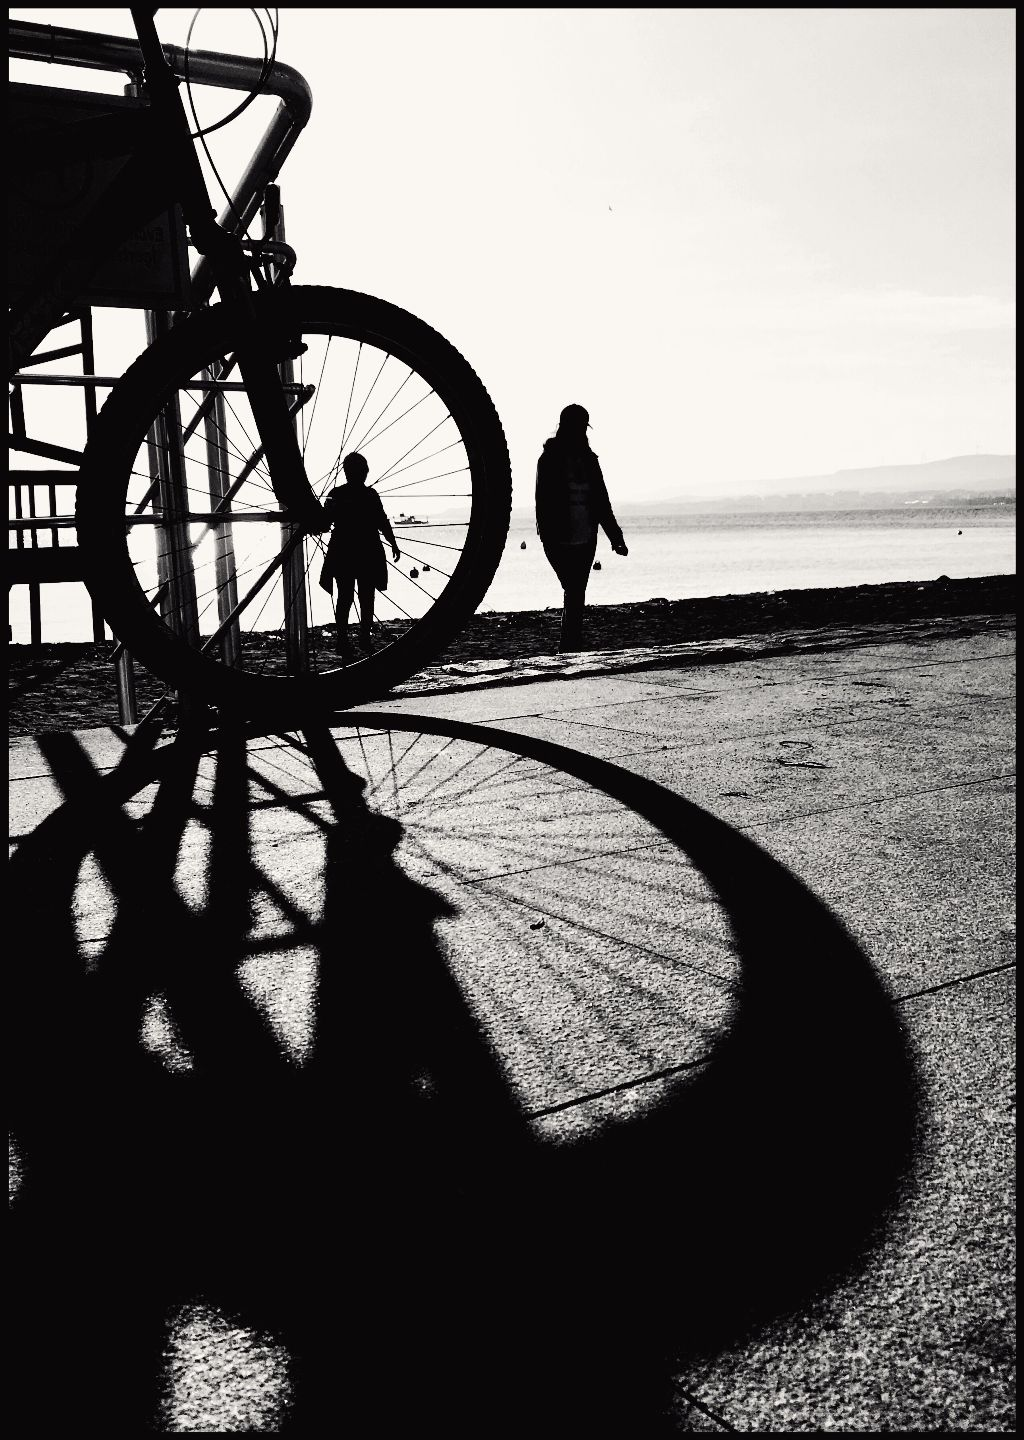 #bw #silhouette #bicycle #shadow